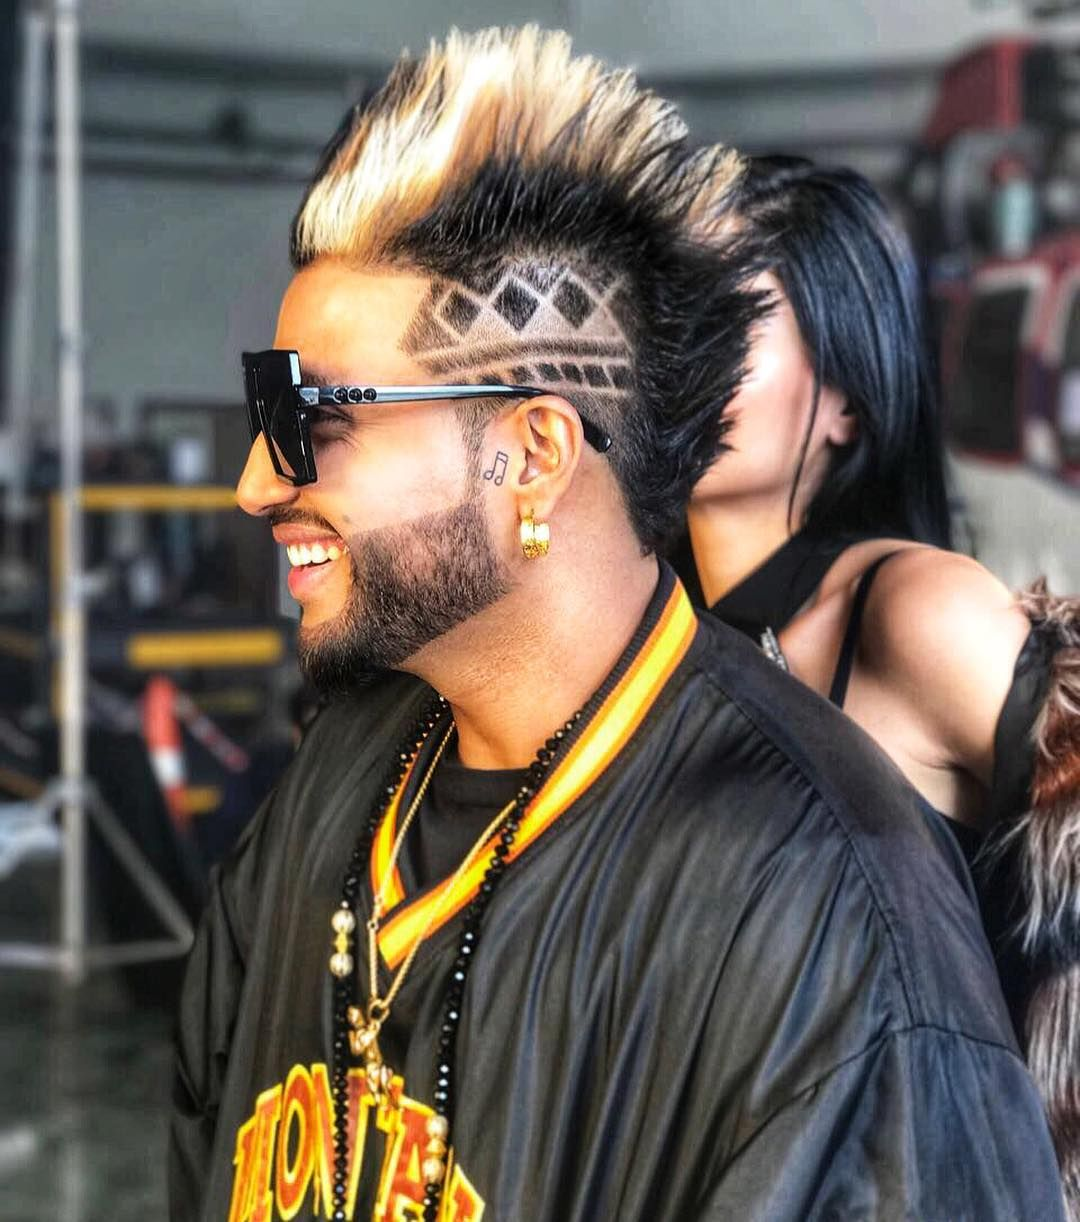 67 9k Likes 571 Comments Sukhe Muzical Doctorz Sukhemuziicaldoctorz On Instagram Thnks Fo Short Shaved Hairstyles Hair And Beard Styles Mens Hairstyles